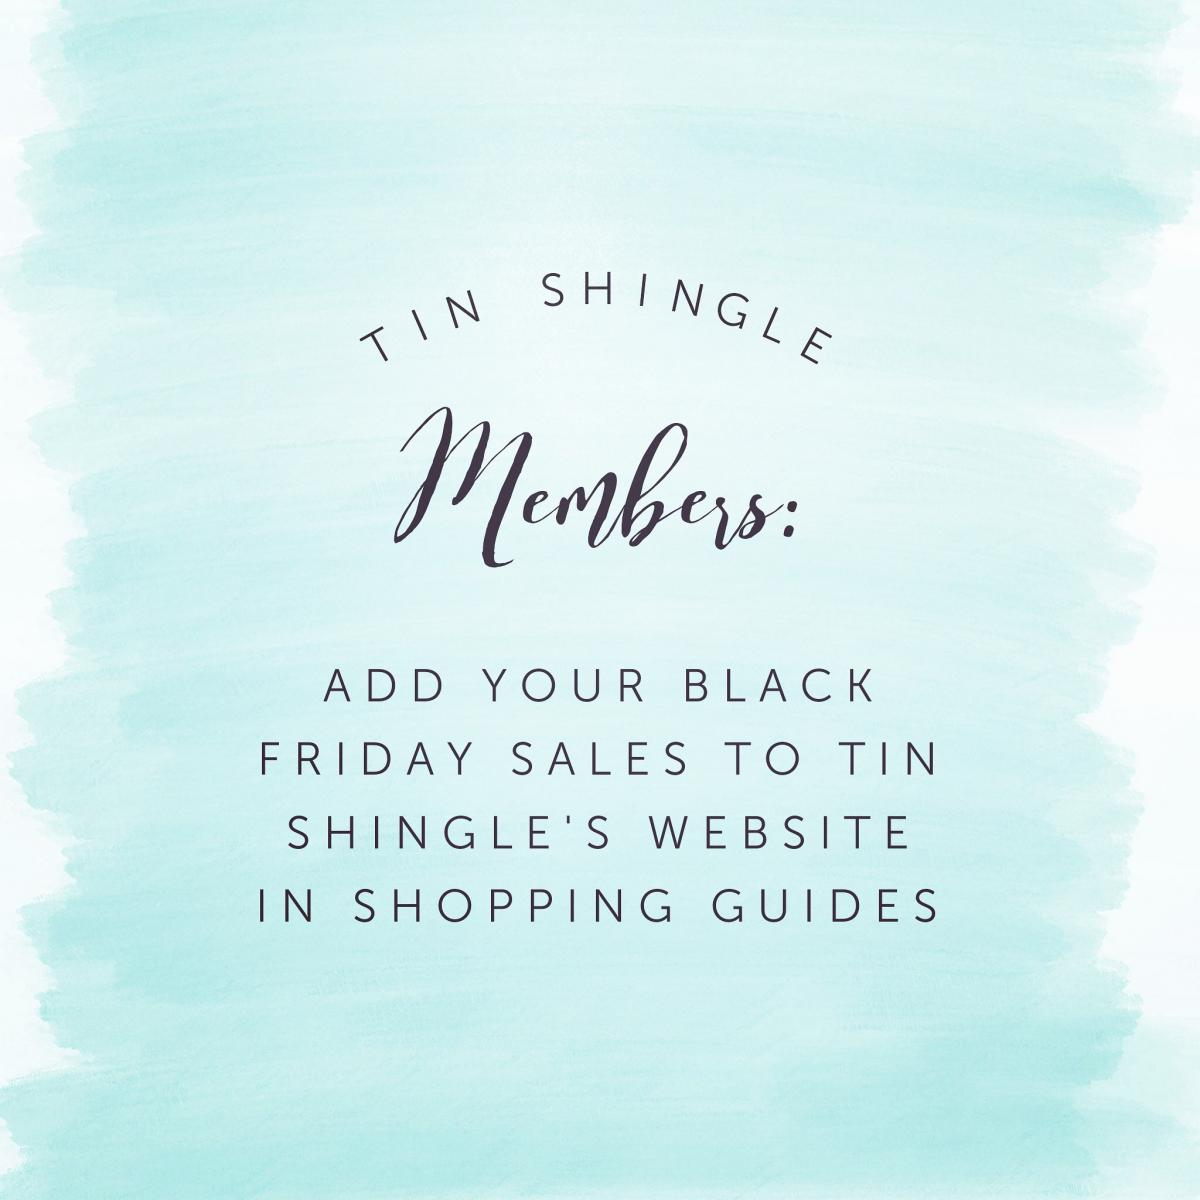 Members of Tin Shingle: Add Your Black Friday Sales to Tin Shingle's Website